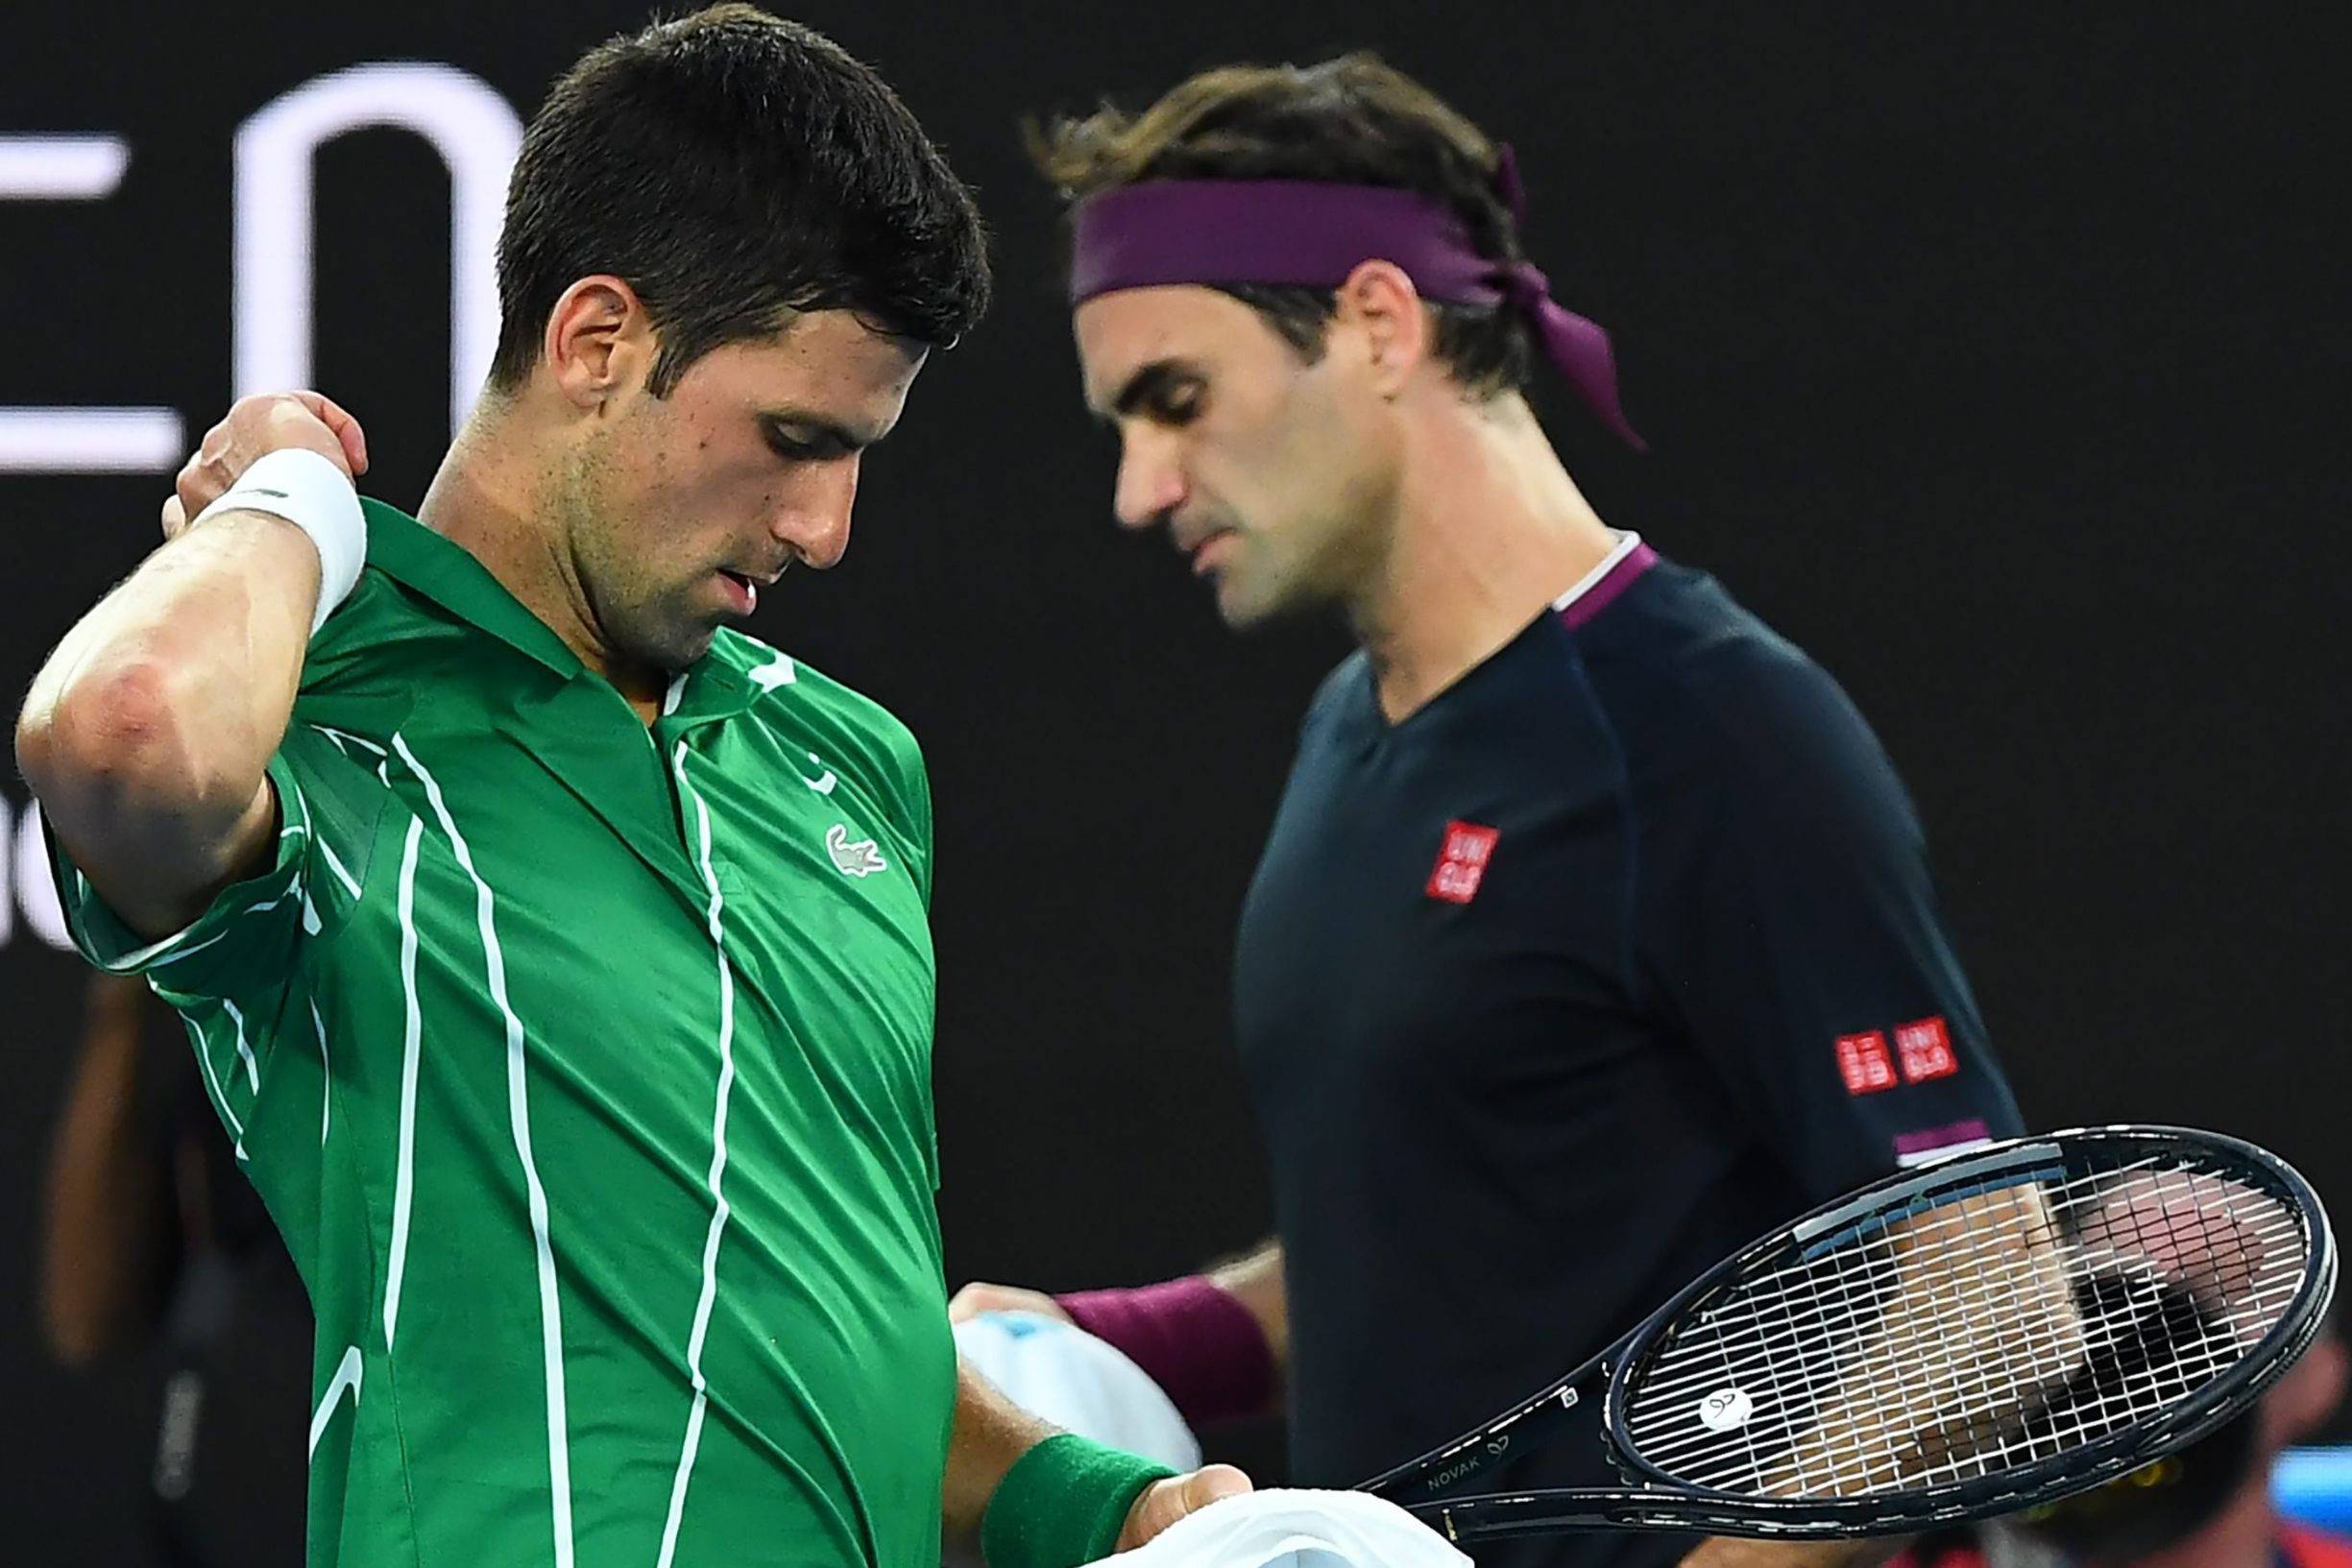 TOPSHOT - Serbia's Novak Djokovic (L) walks past Switzerland's Roger Federer during their men's singles semi-final match on day eleven of the Australian Open tennis tournament in Melbourne on January 30, 2020. (Photo by William WEST / AFP) / IMAGE RESTRICTED TO EDITORIAL USE - STRICTLY NO COMMERCIAL USE